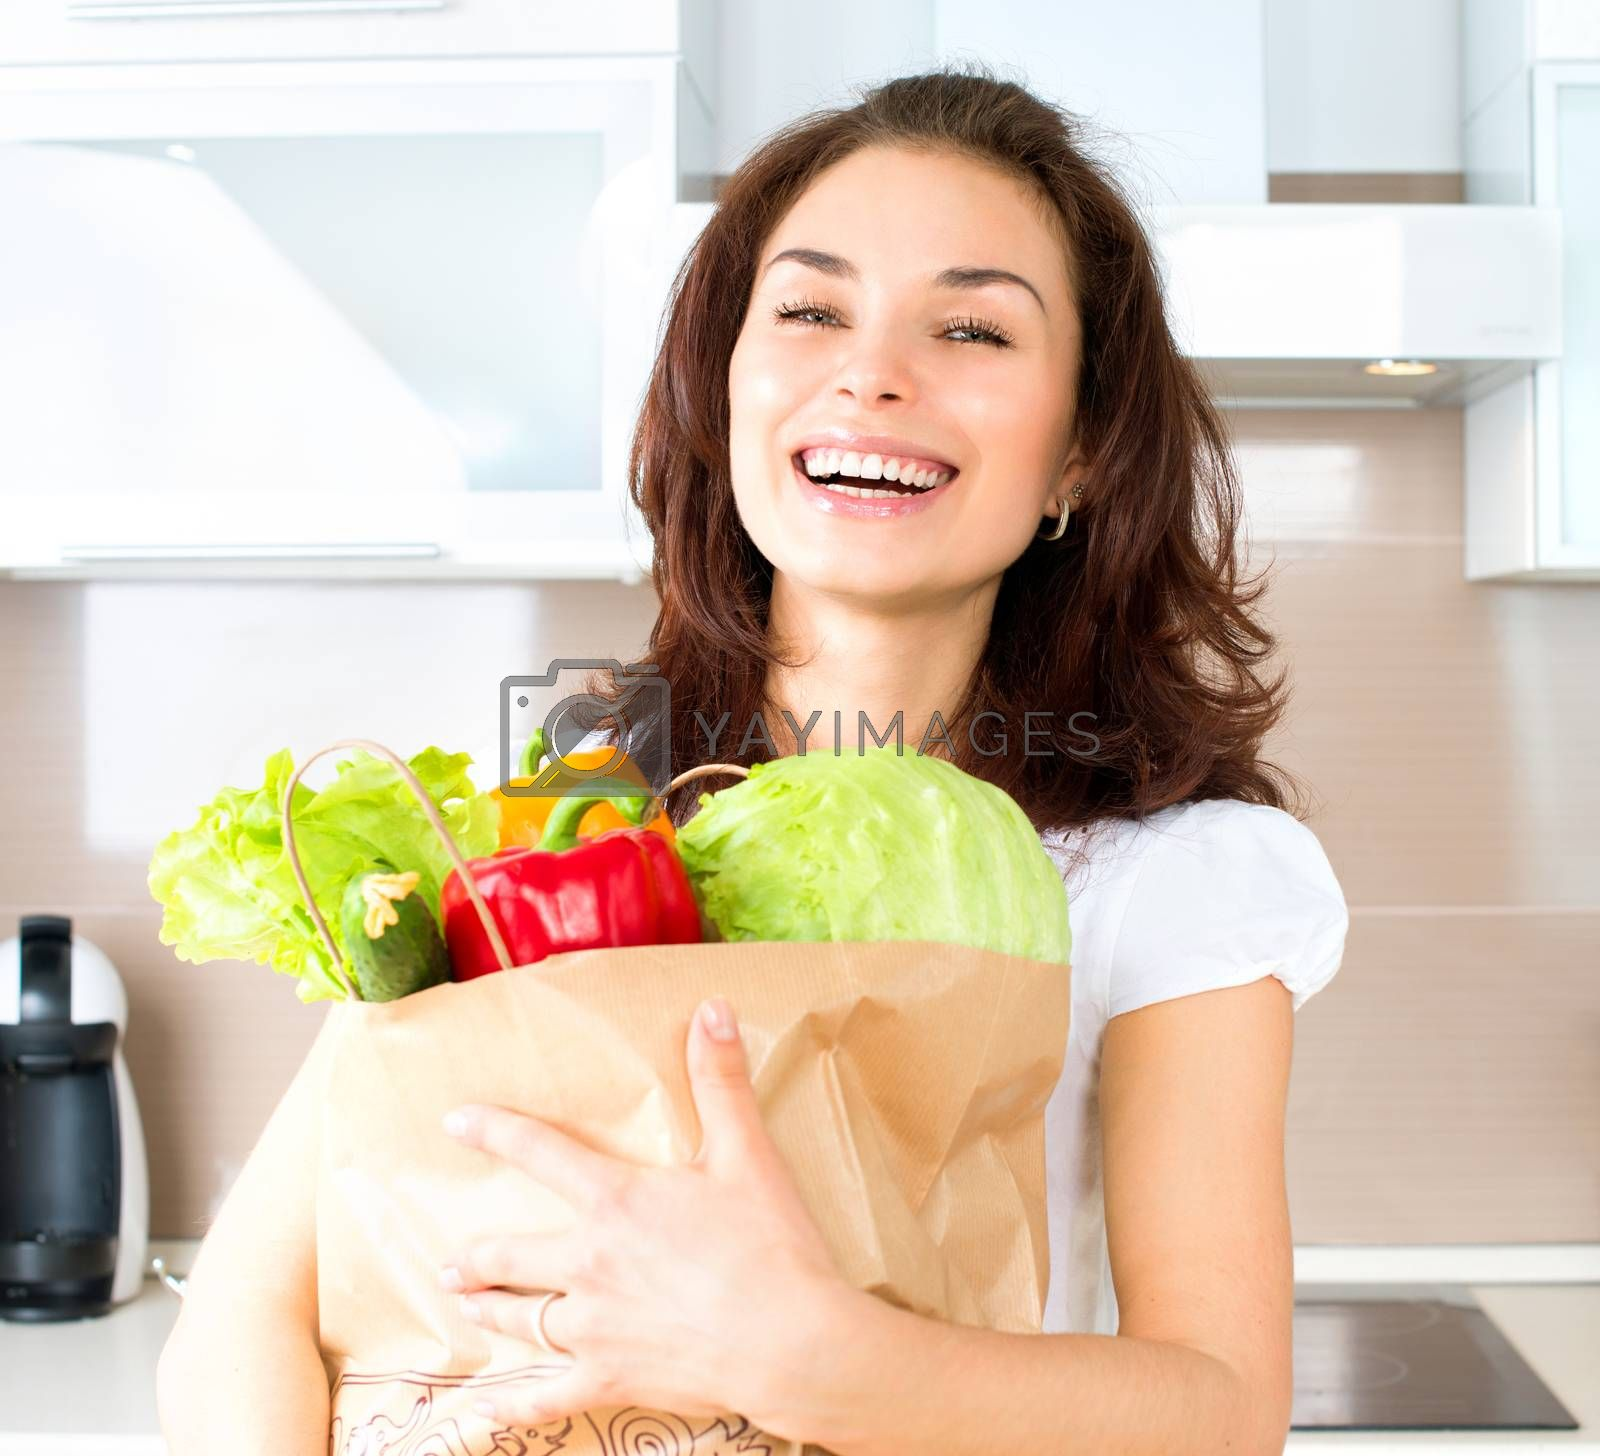 Happy Young Woman with Vegetables in Shopping Bag. Diet Concept  by SubbotinaA